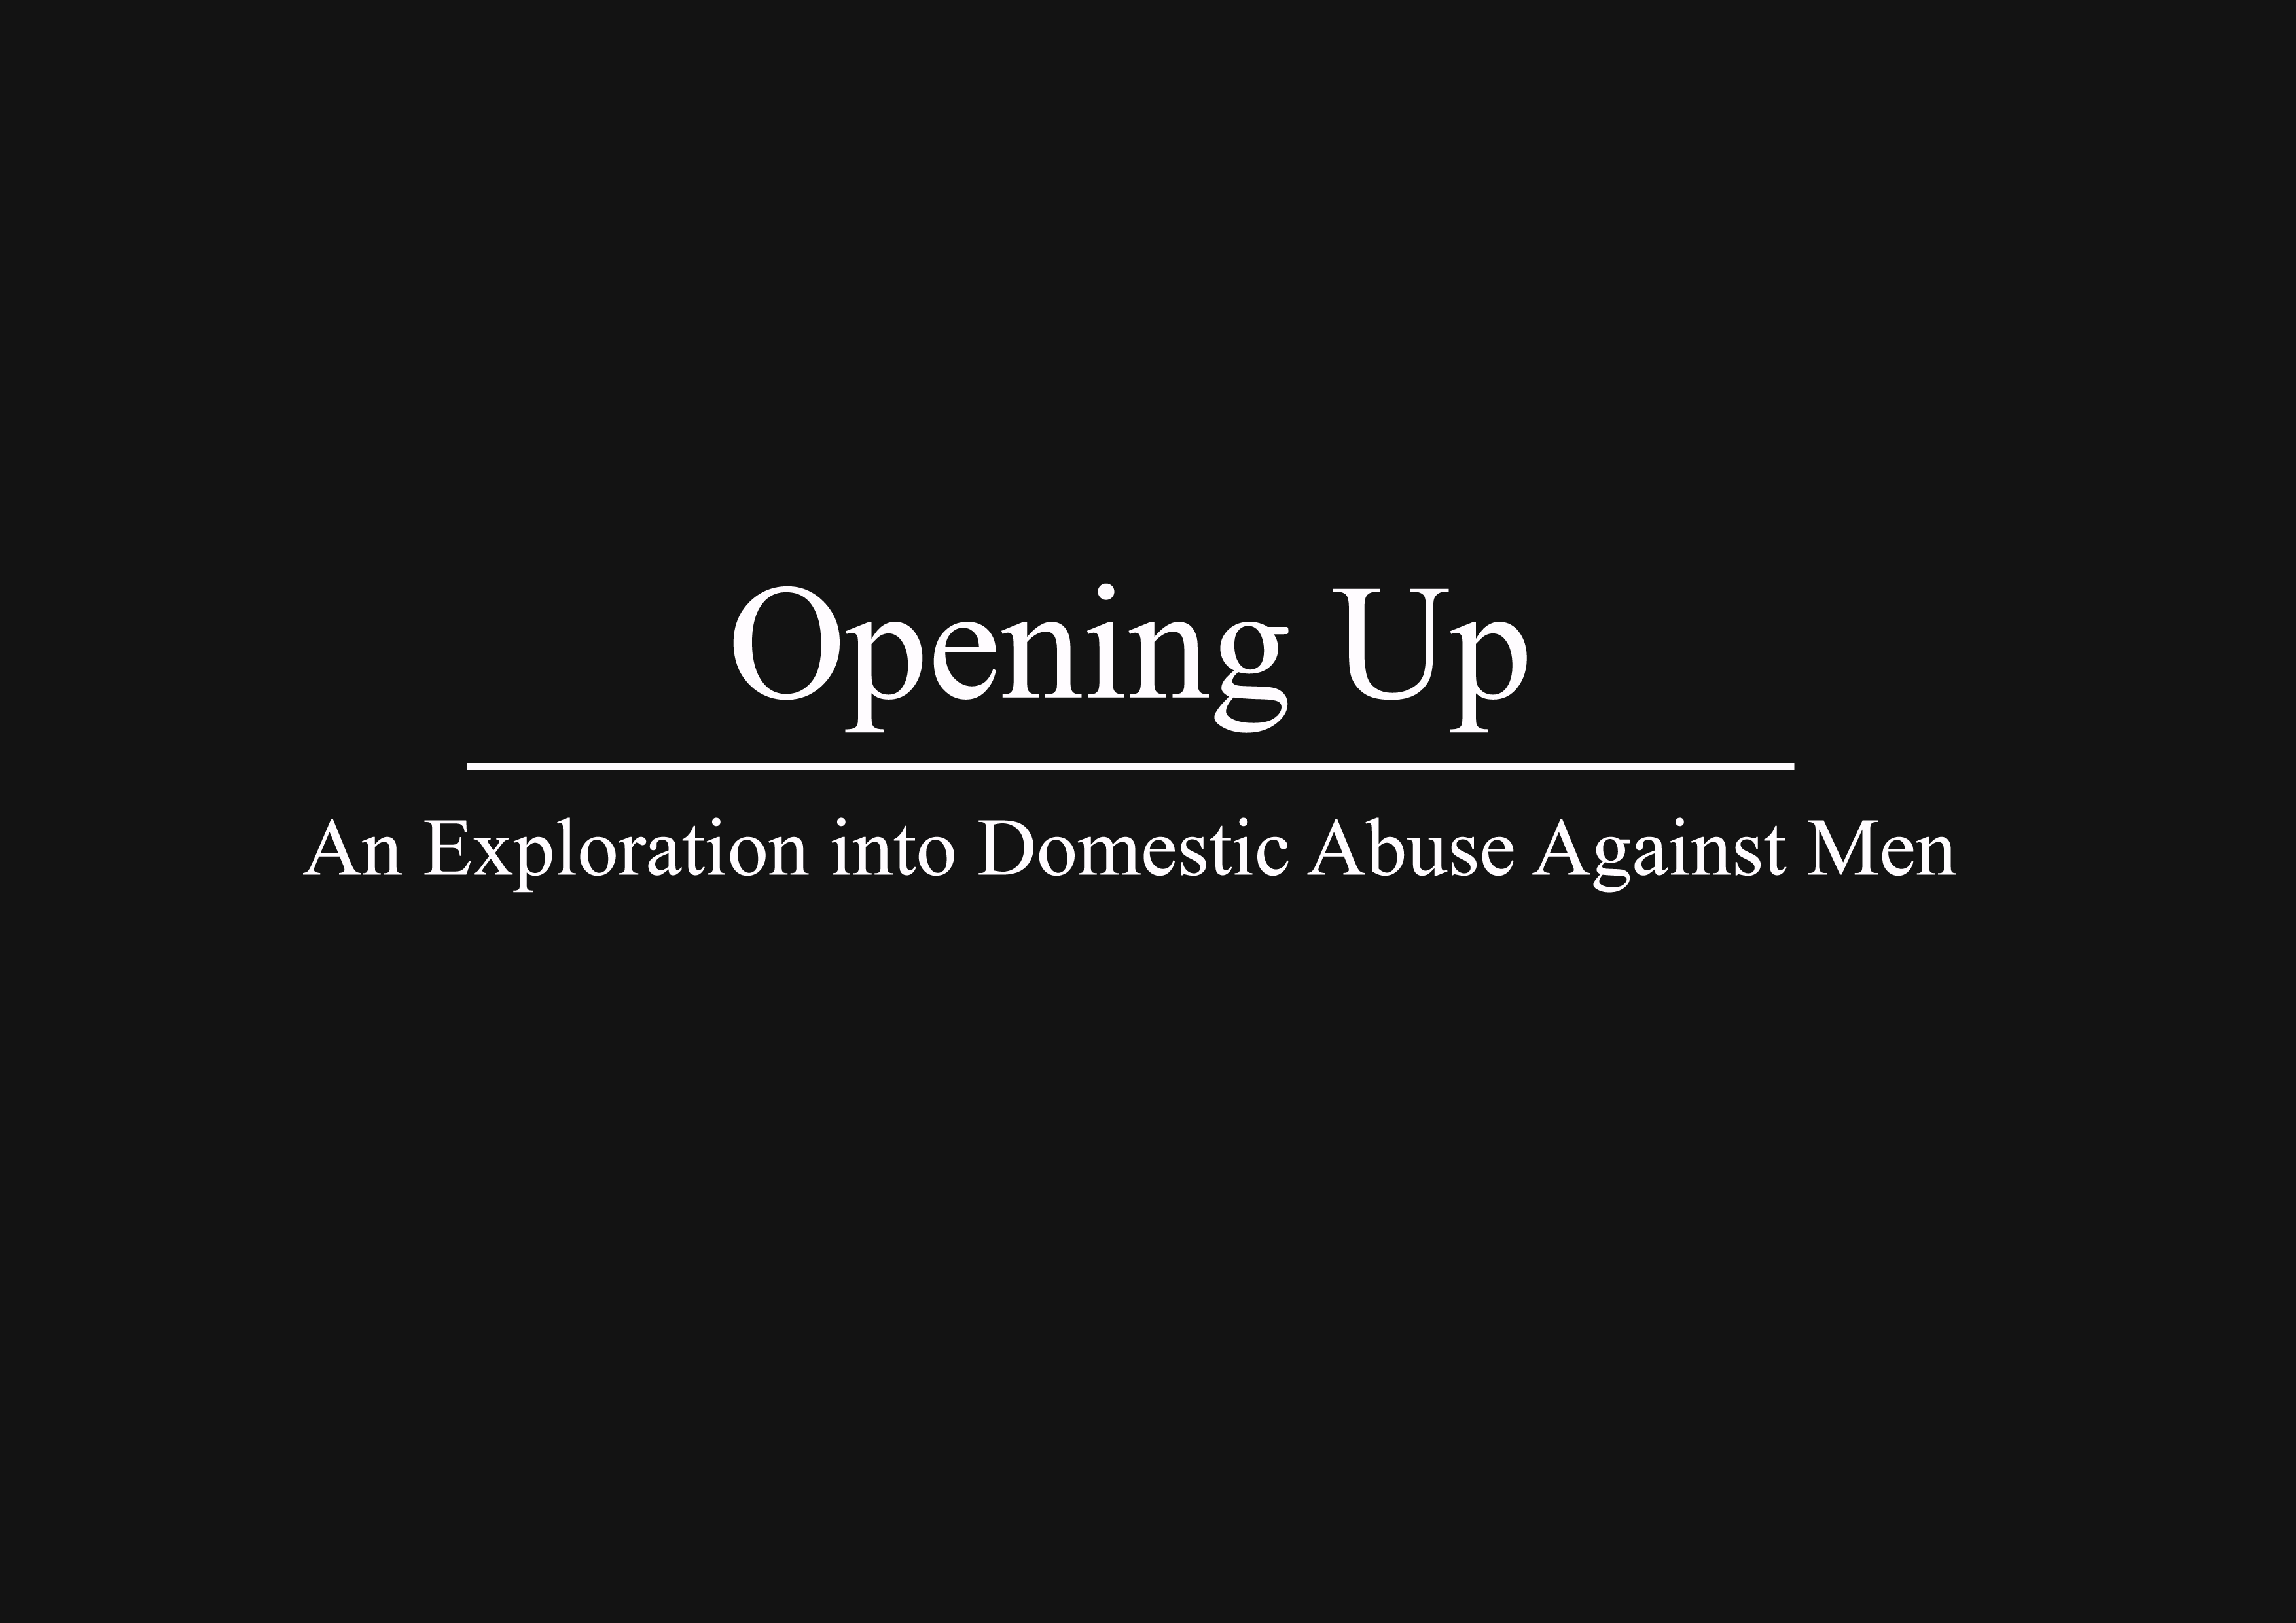 Opening Up: An Exploration into Domestic Abuse against Men